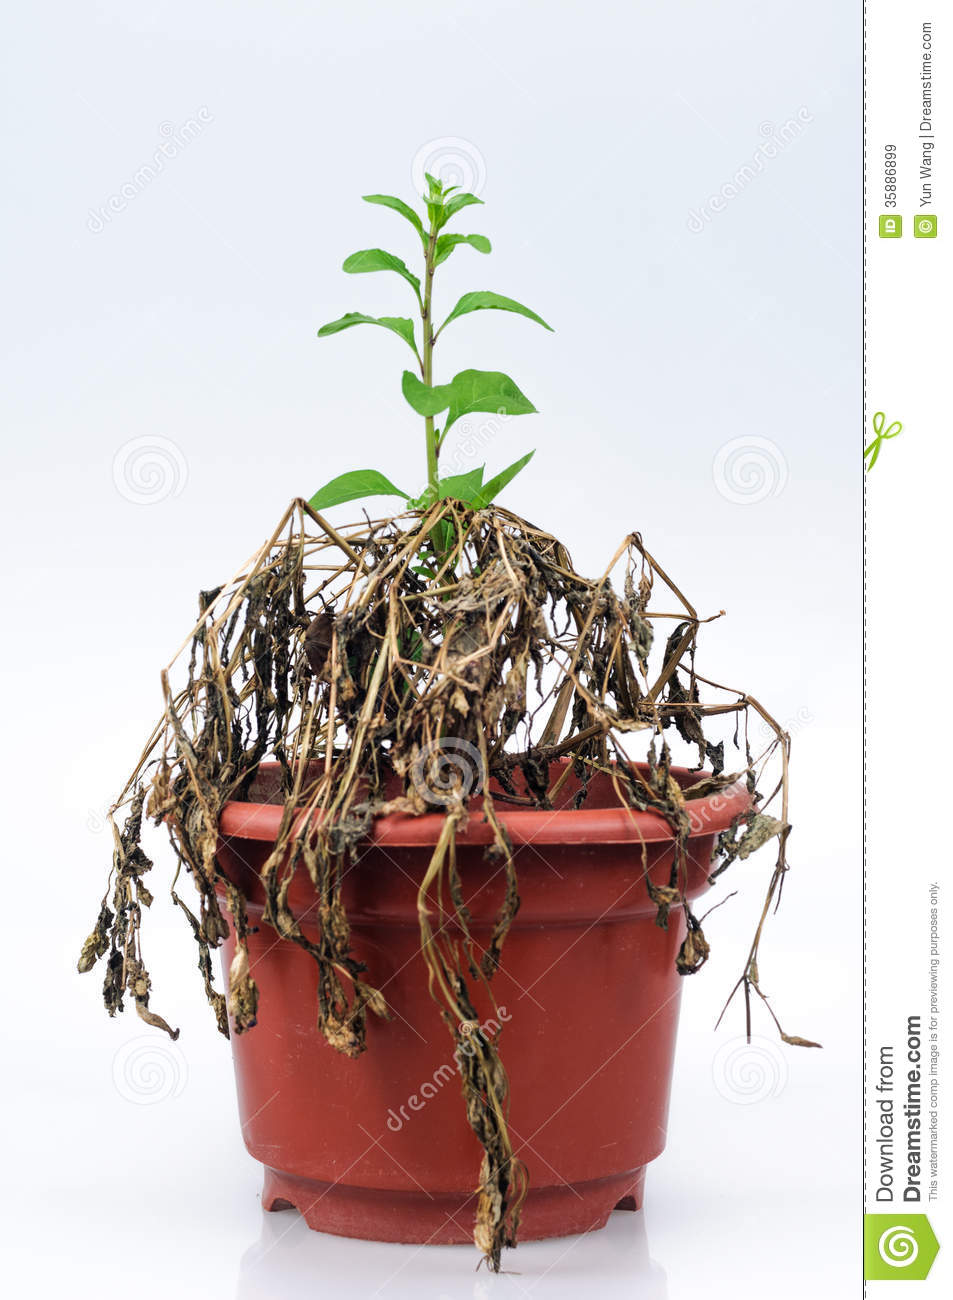 Withered Plants Royalty Free Stock Images Image 35886899